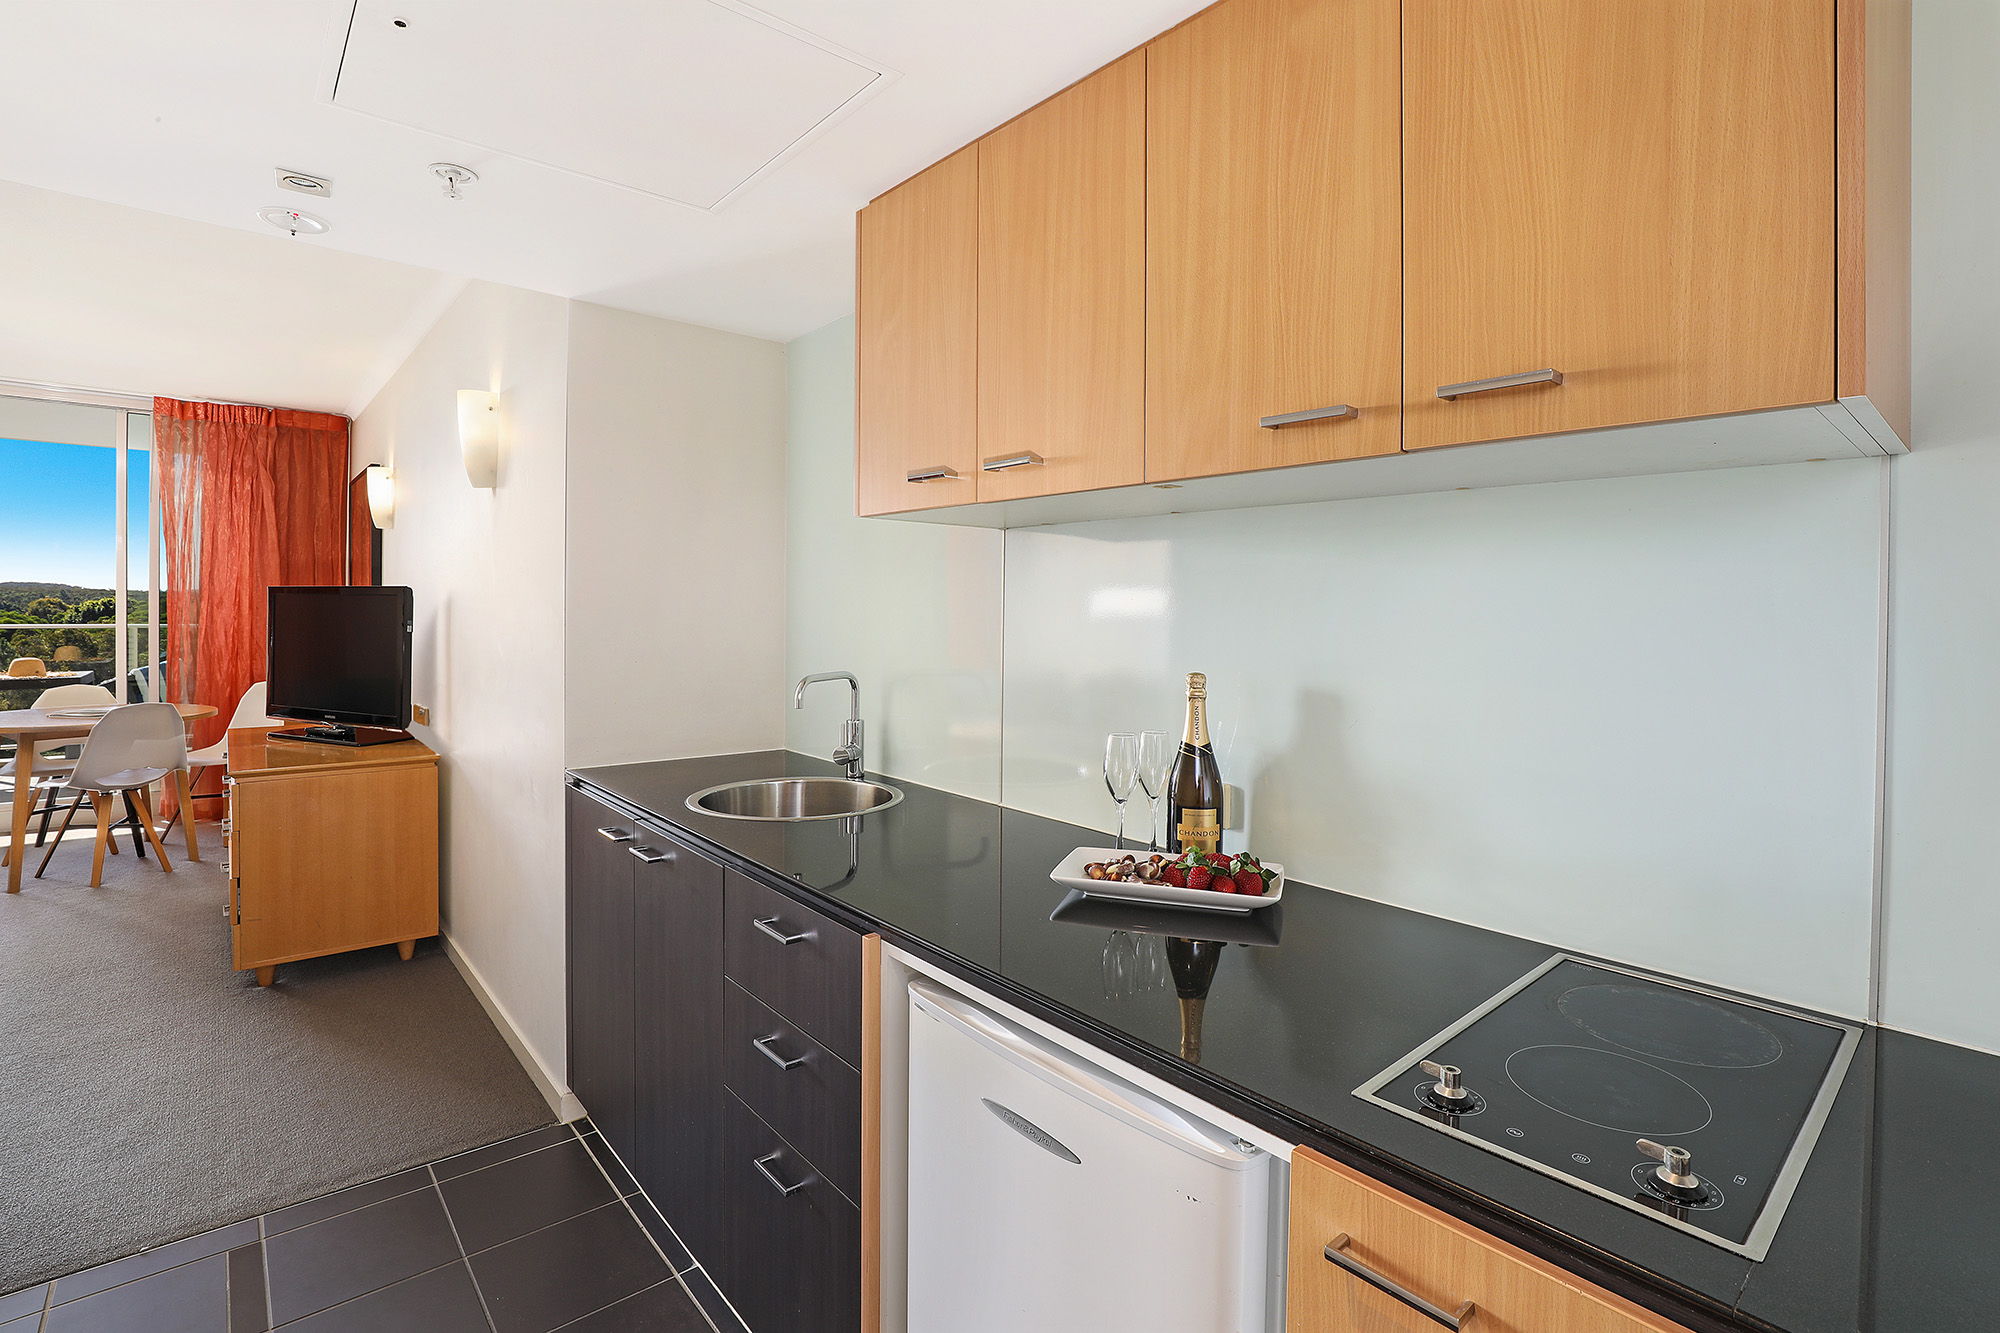 One Bed Apartment Kitchenette